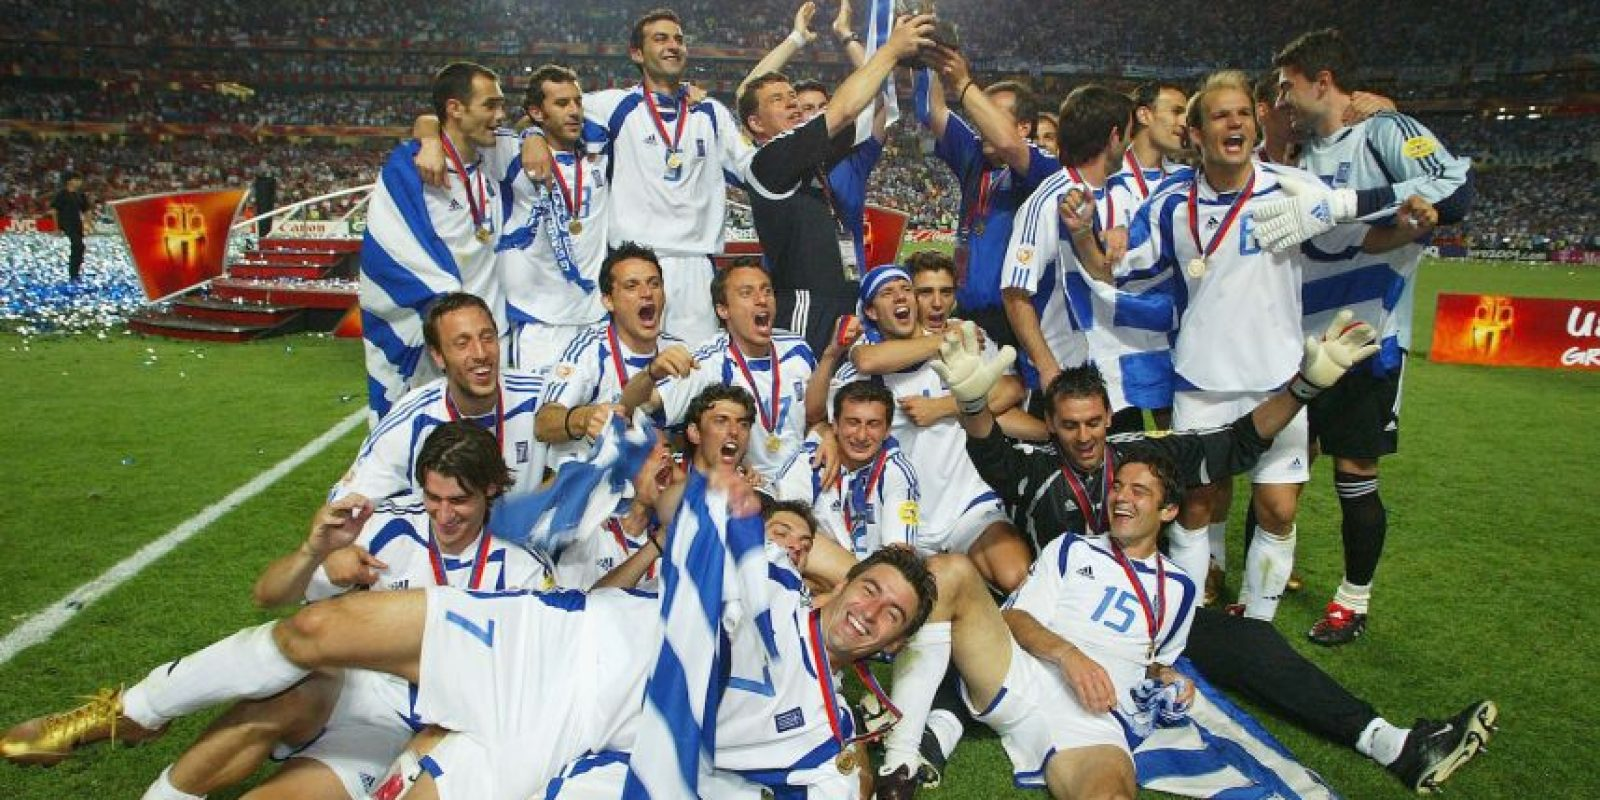 Grecia – 1 título (2004) Foto: Getty Images